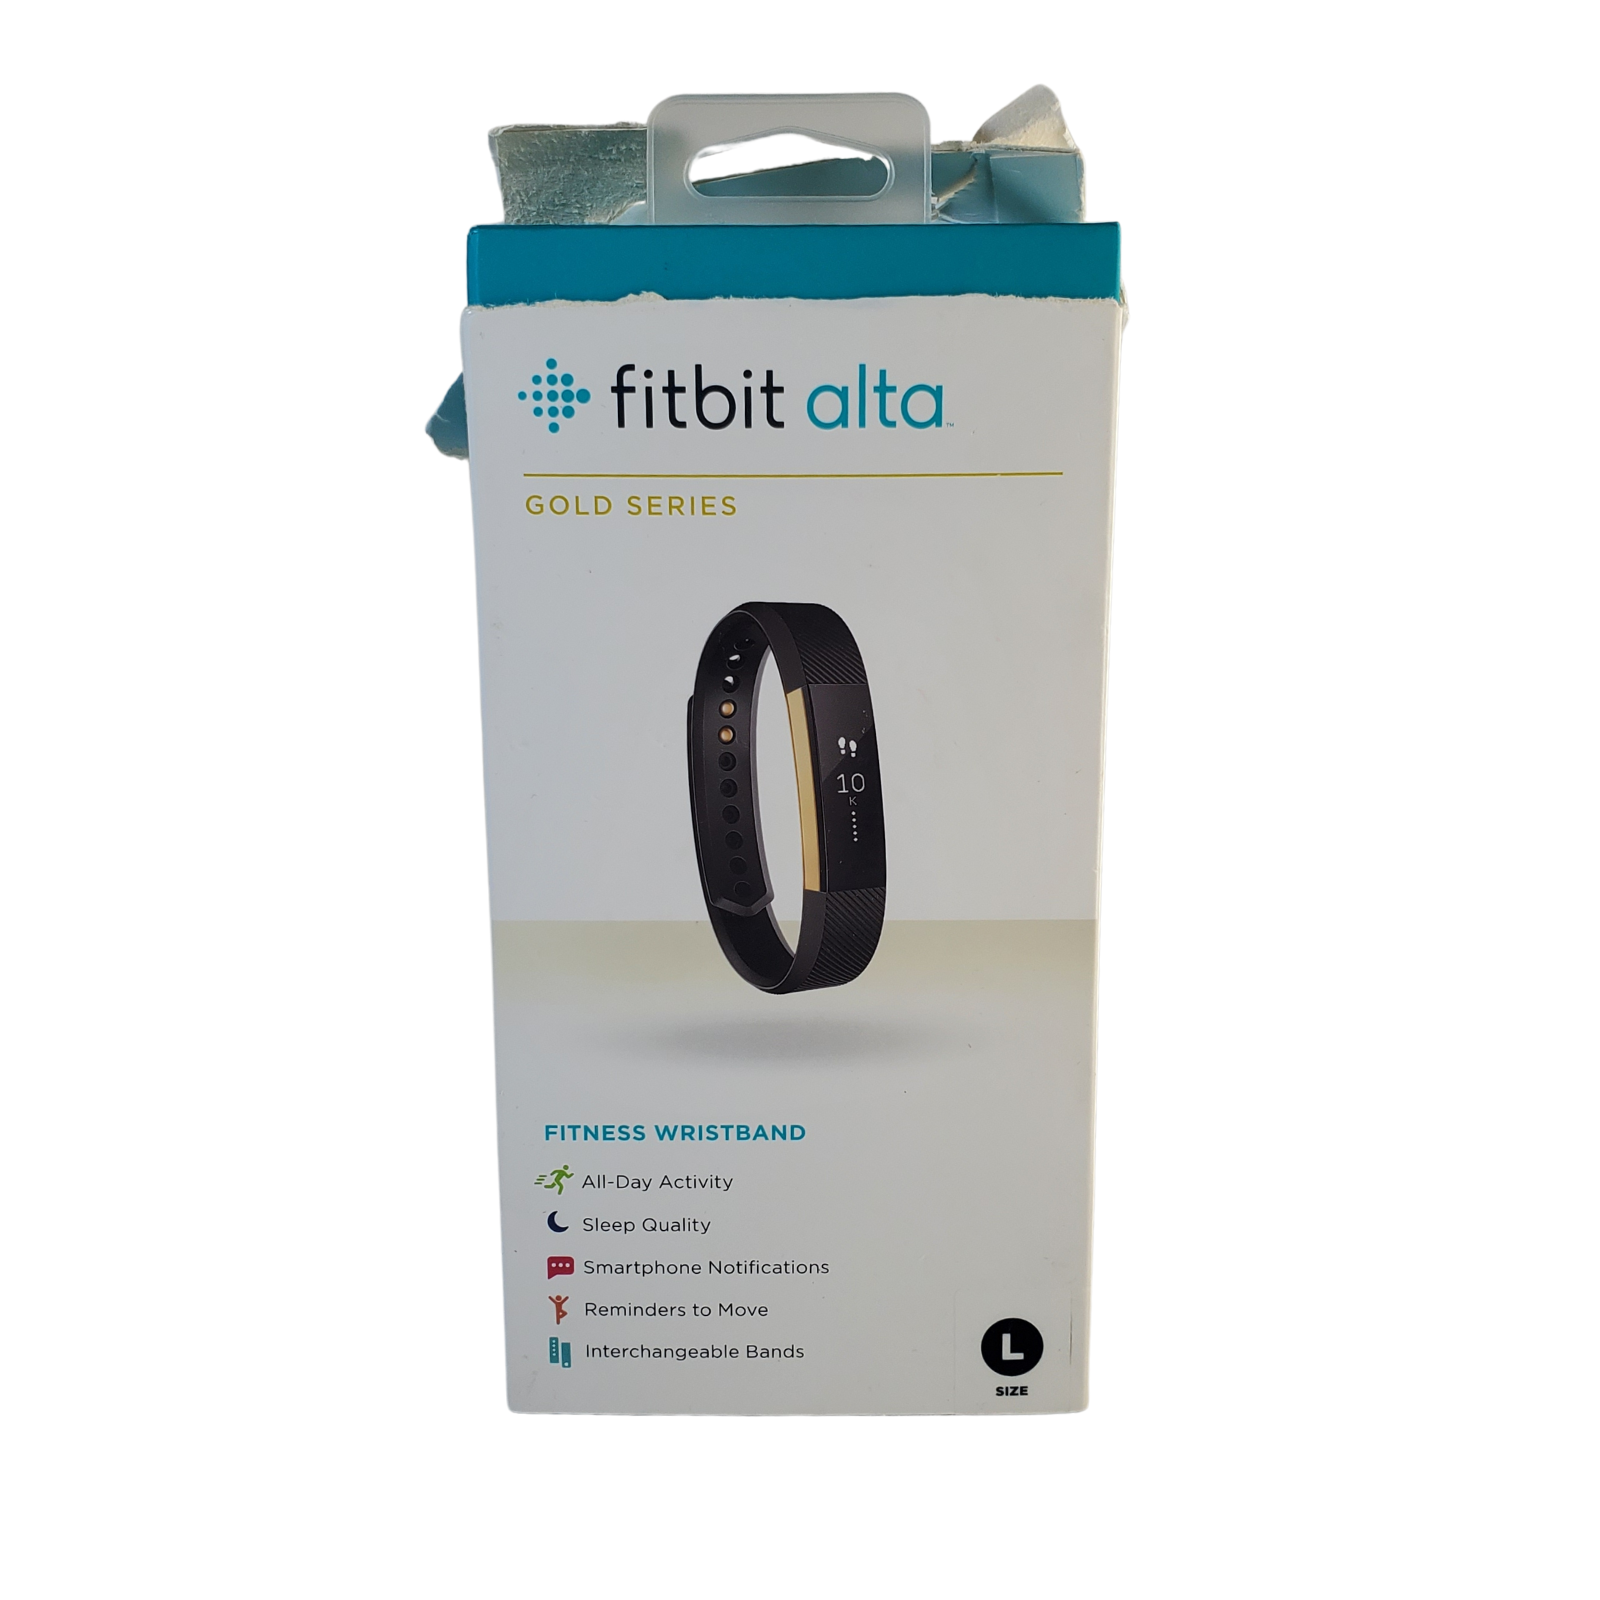 Fitbit Alta Fitness Tracker   OLED   Limited Edition Gold Series   Large